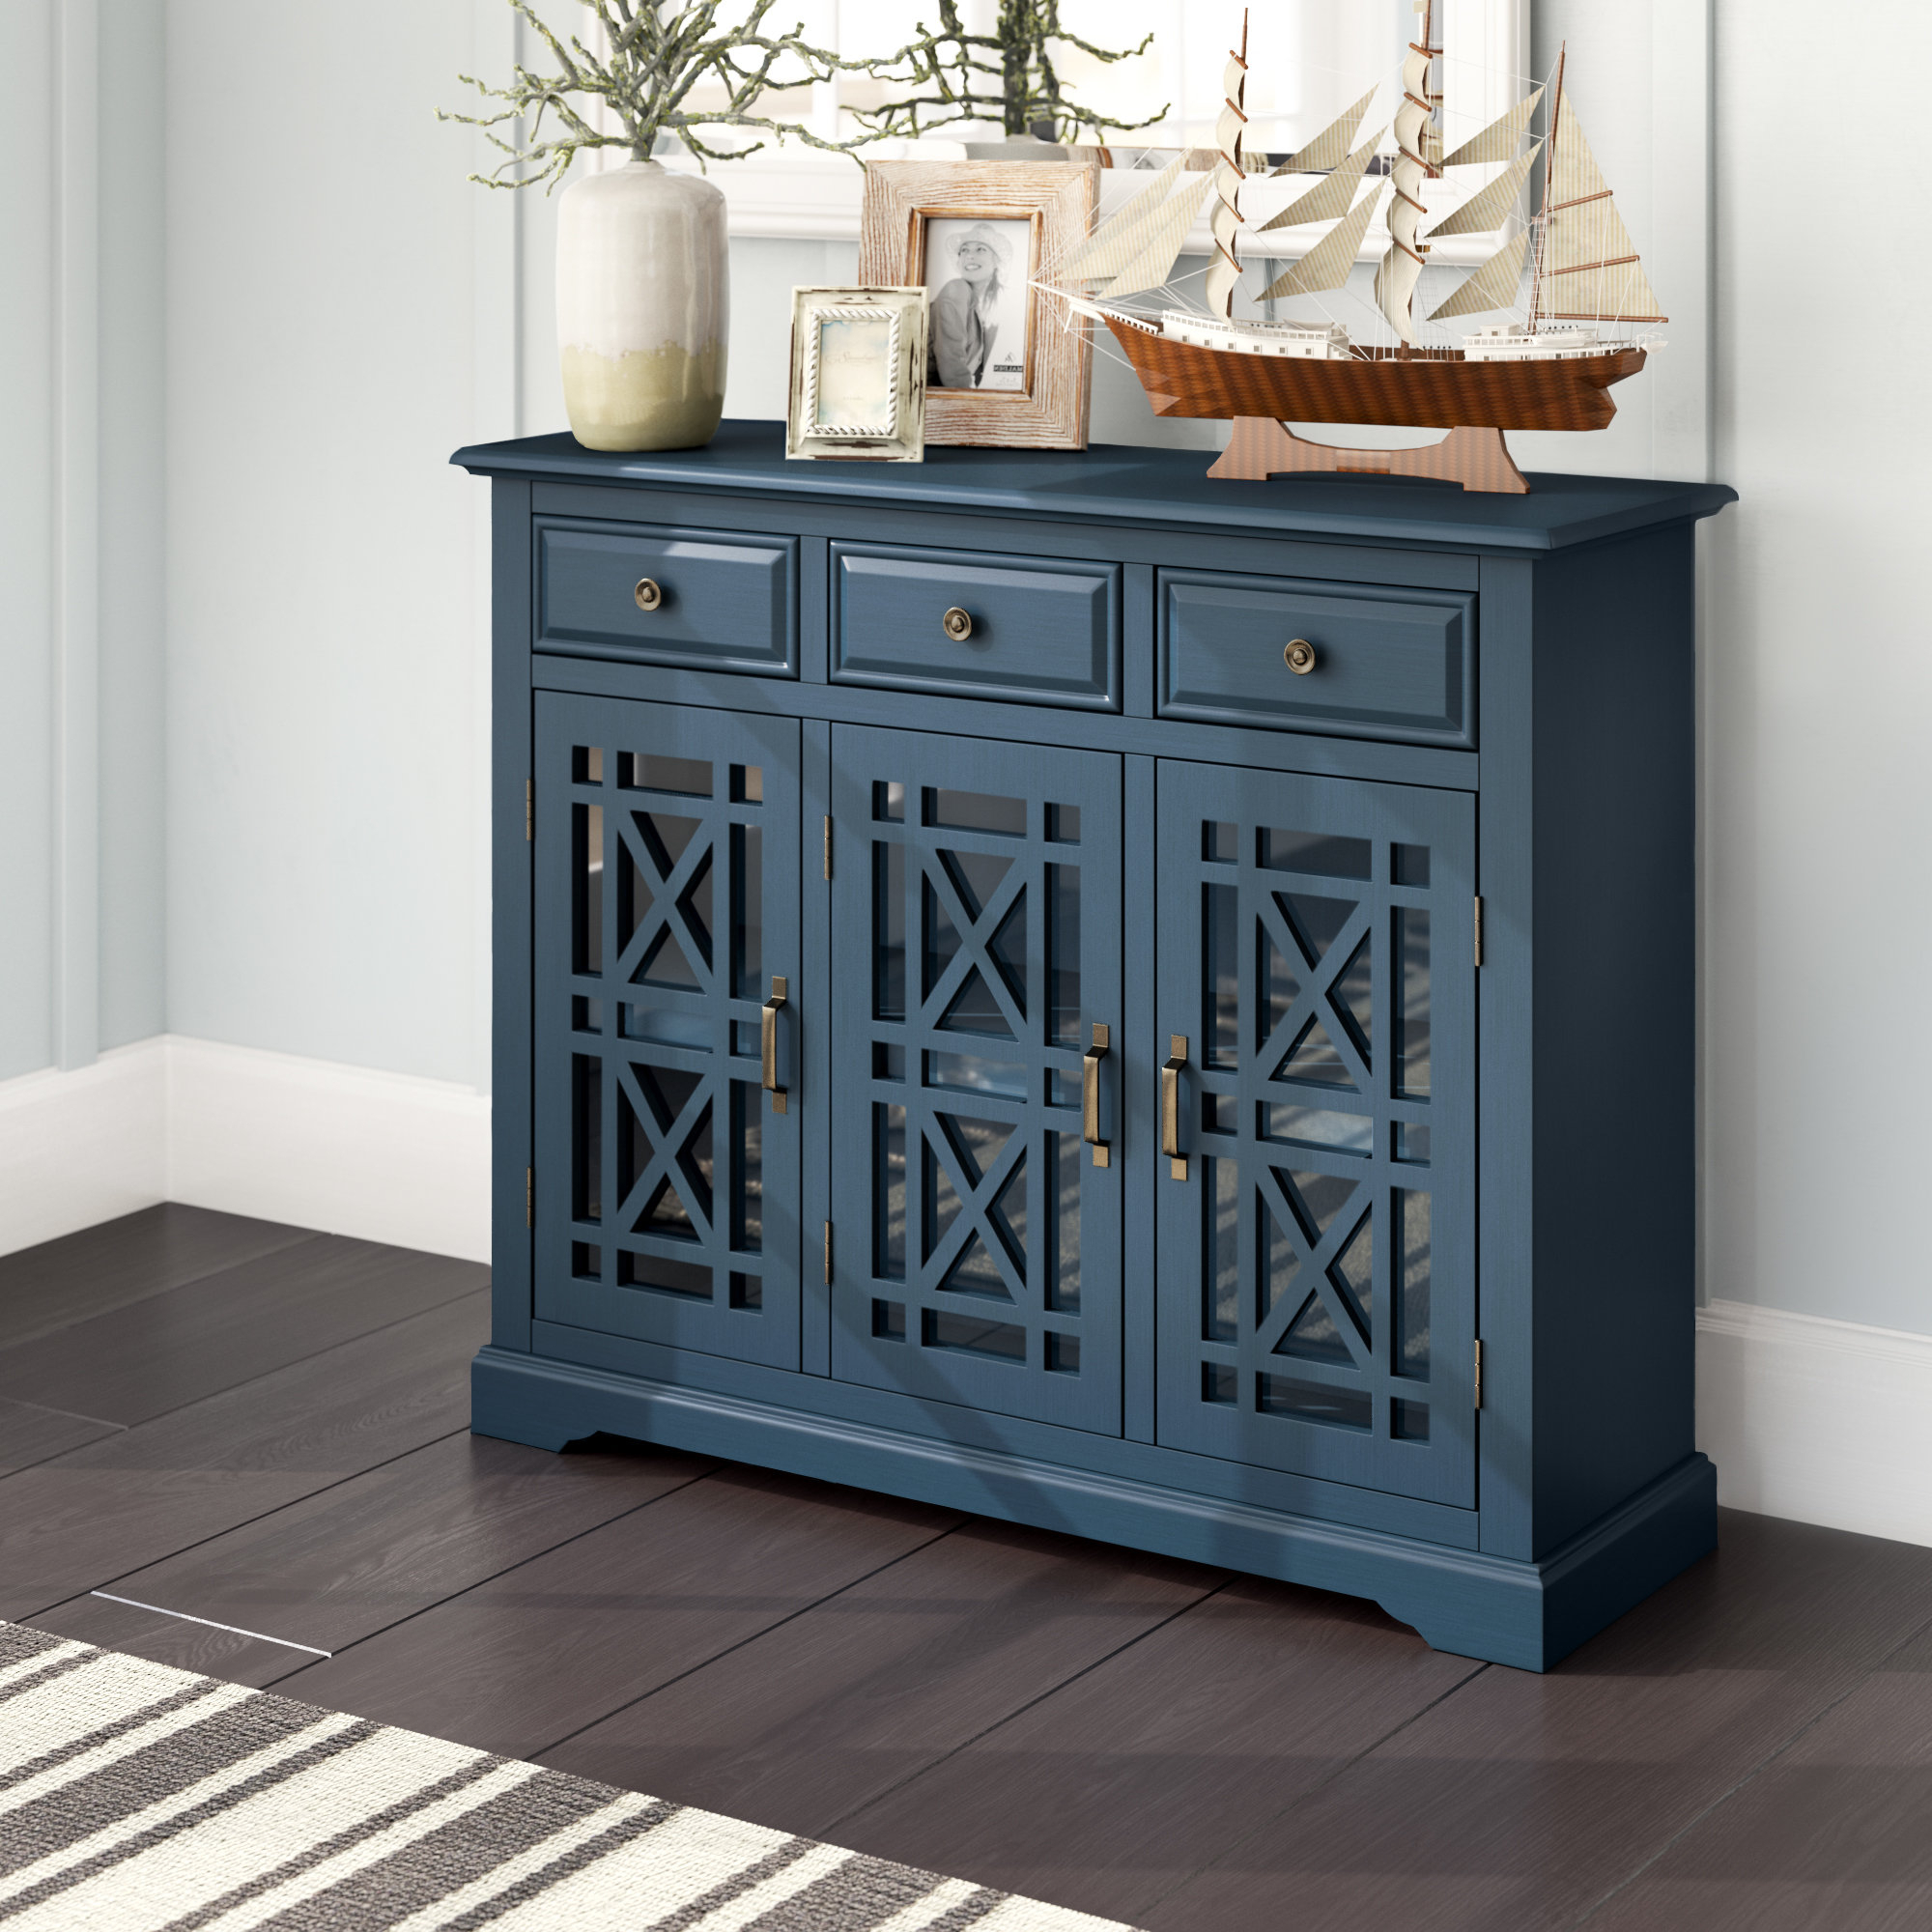 Sideboards & Buffet Tables You'll Love In 2019 | Wayfair Pertaining To 2018 Seiling Sideboards (#18 of 20)